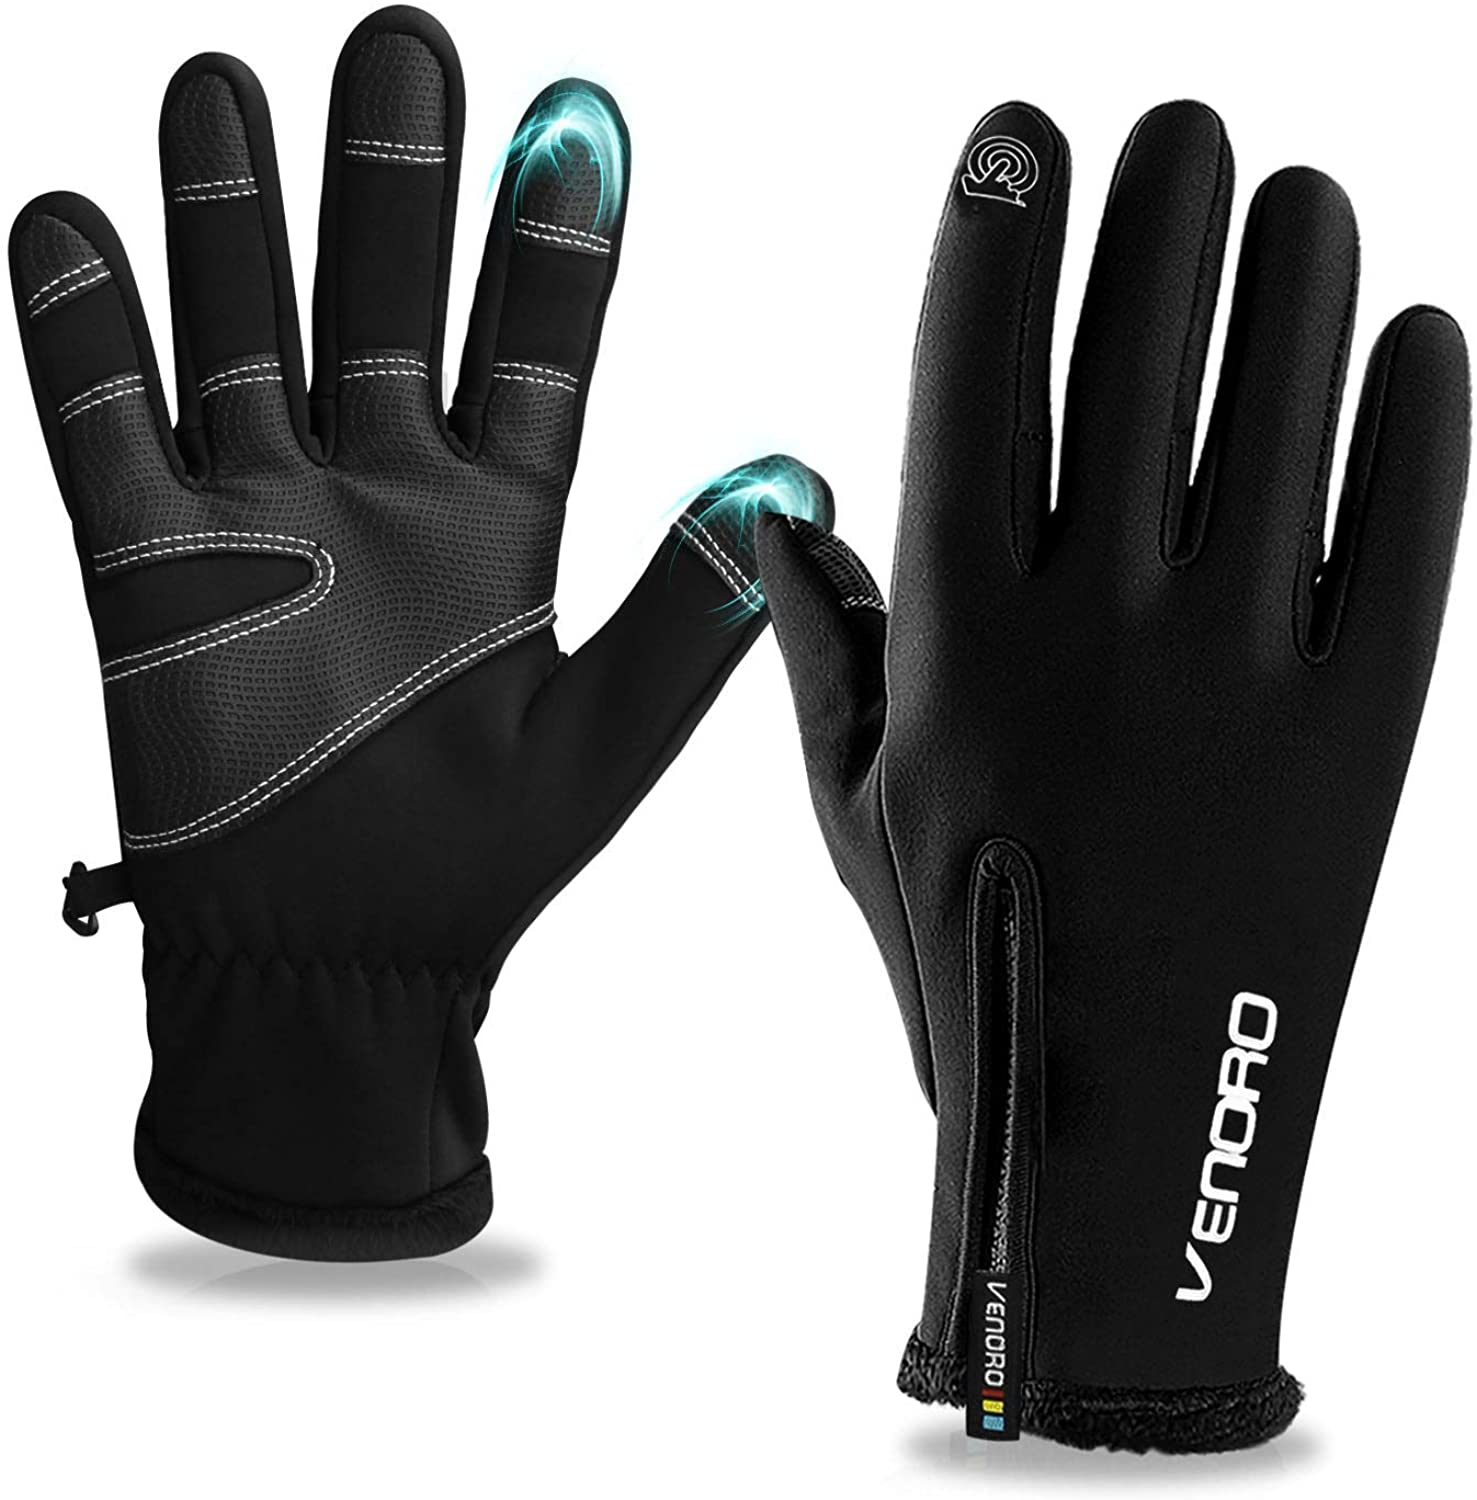 Winter Gloves, Tsuinz Touch Screen Gloves Warm Gloves Thermal Liner Waterproof for Running Driving Cycling Men Women